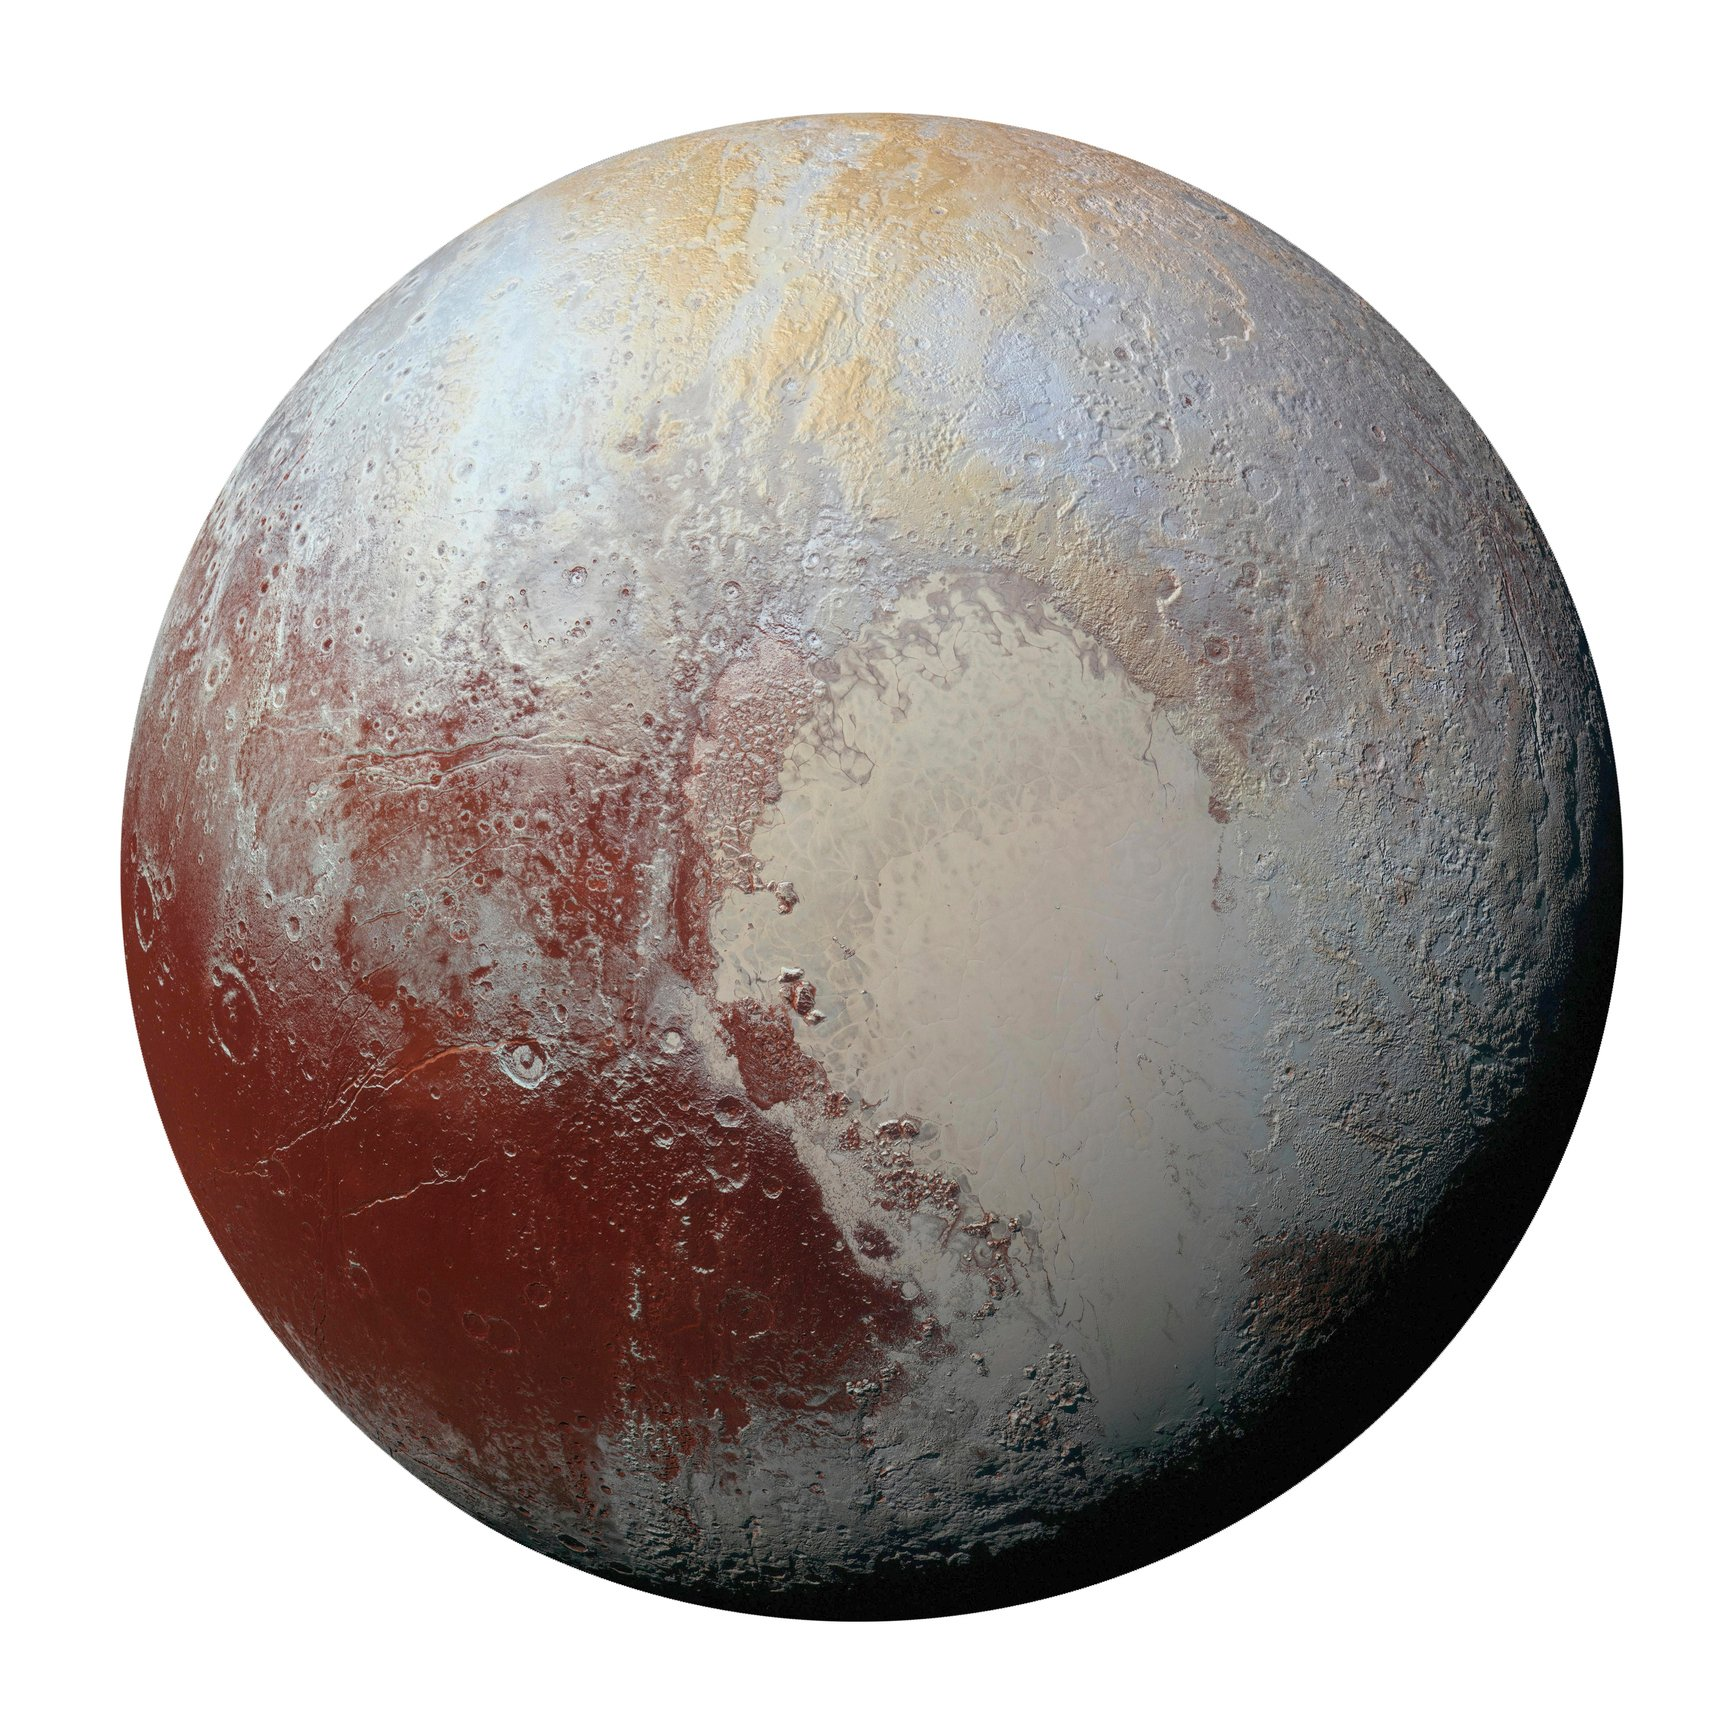 Pluto's surface has a lot of colors, but